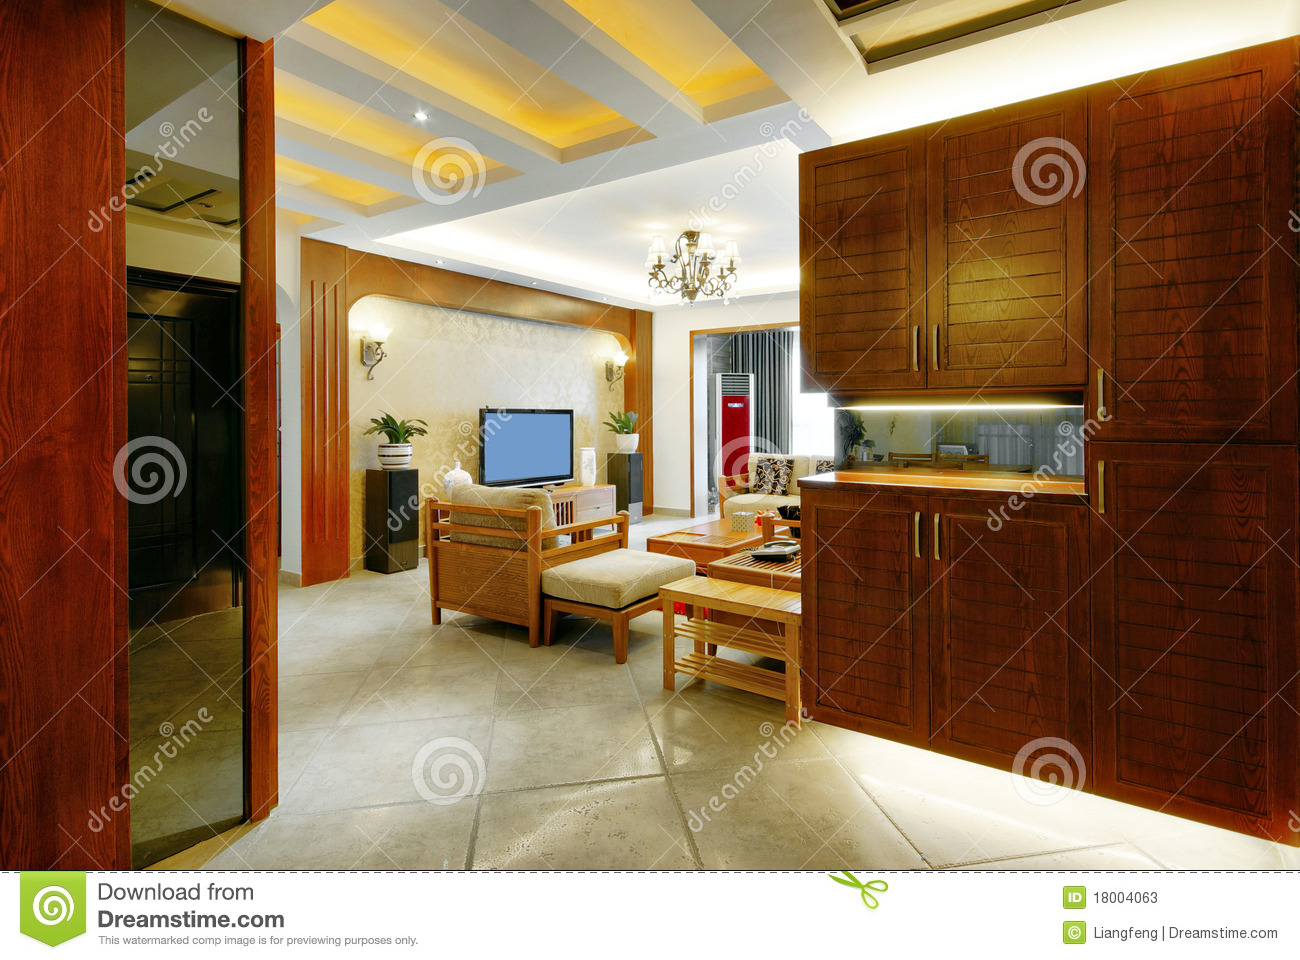 Beautiful home decor stock image image of layout home 18004063 - Beautifully decorated bedrooms ...